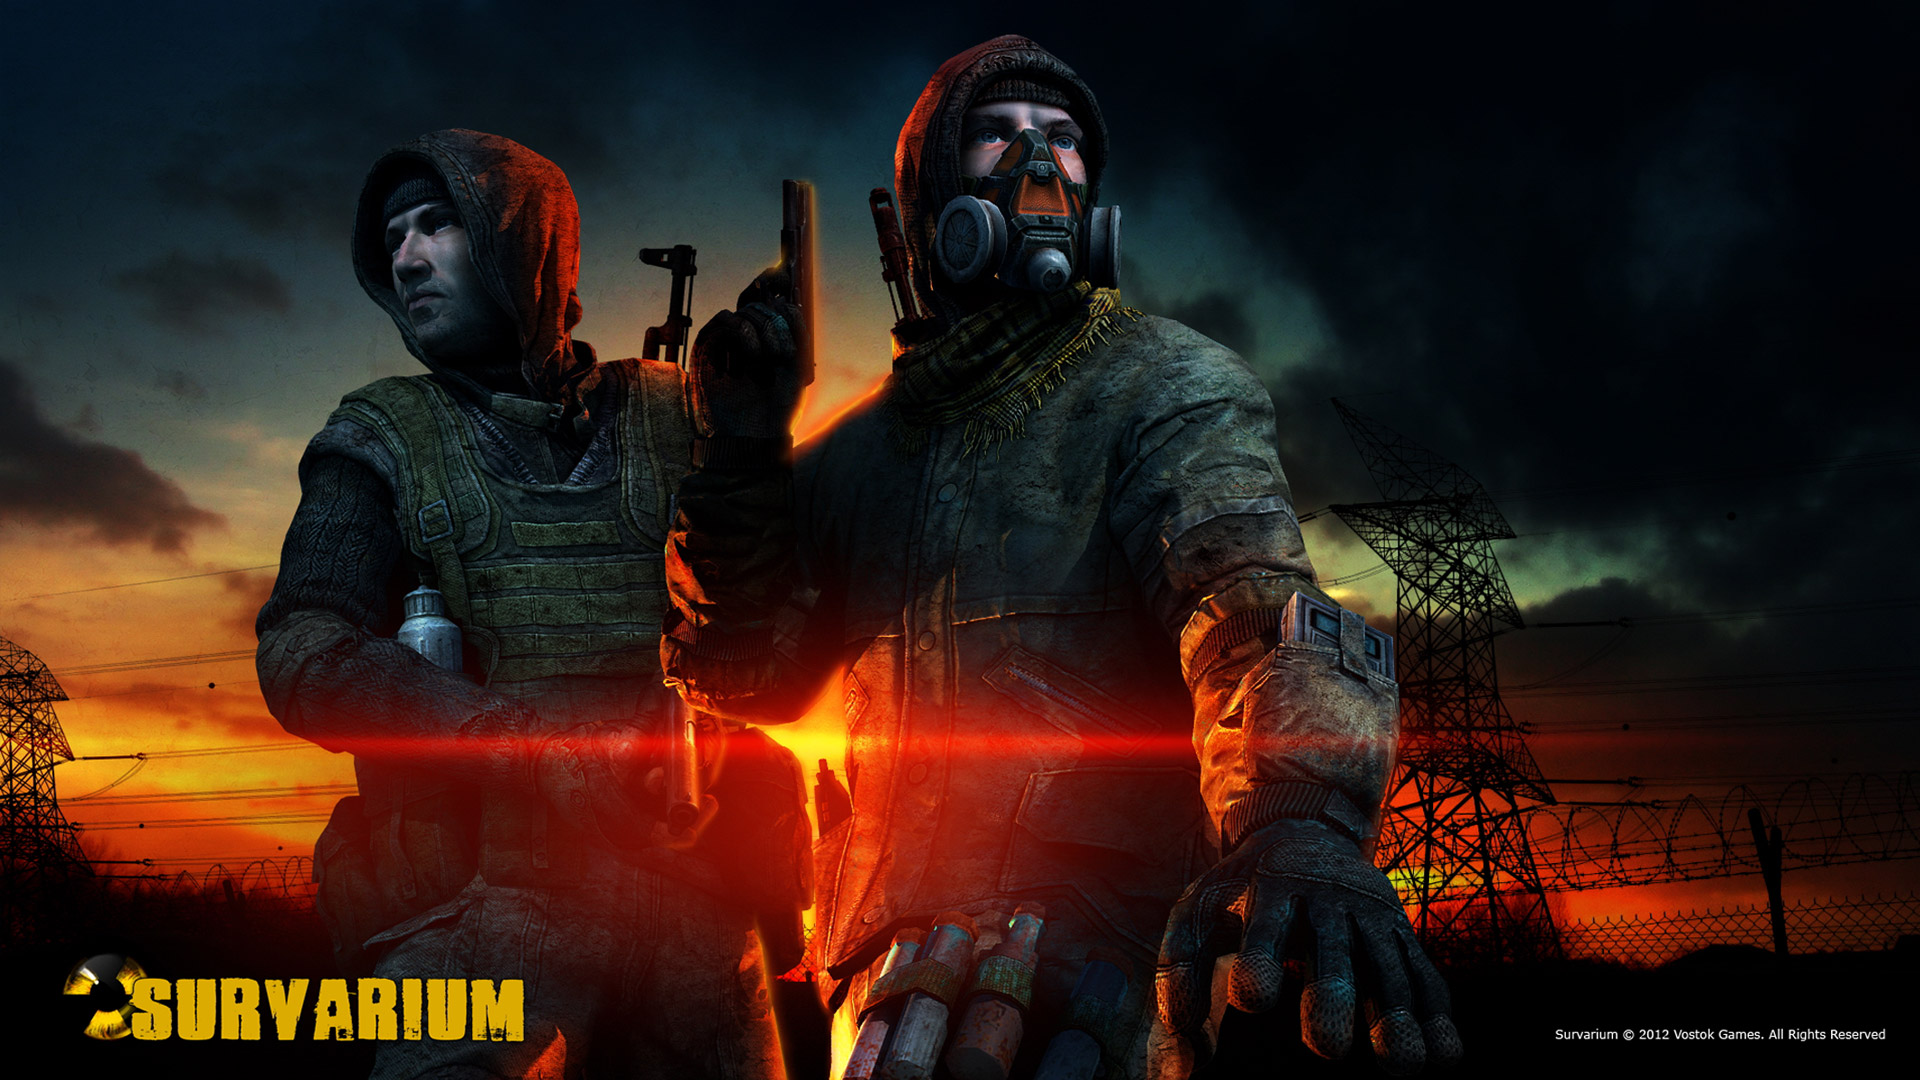 Free Survarium Wallpaper in 1920x1080